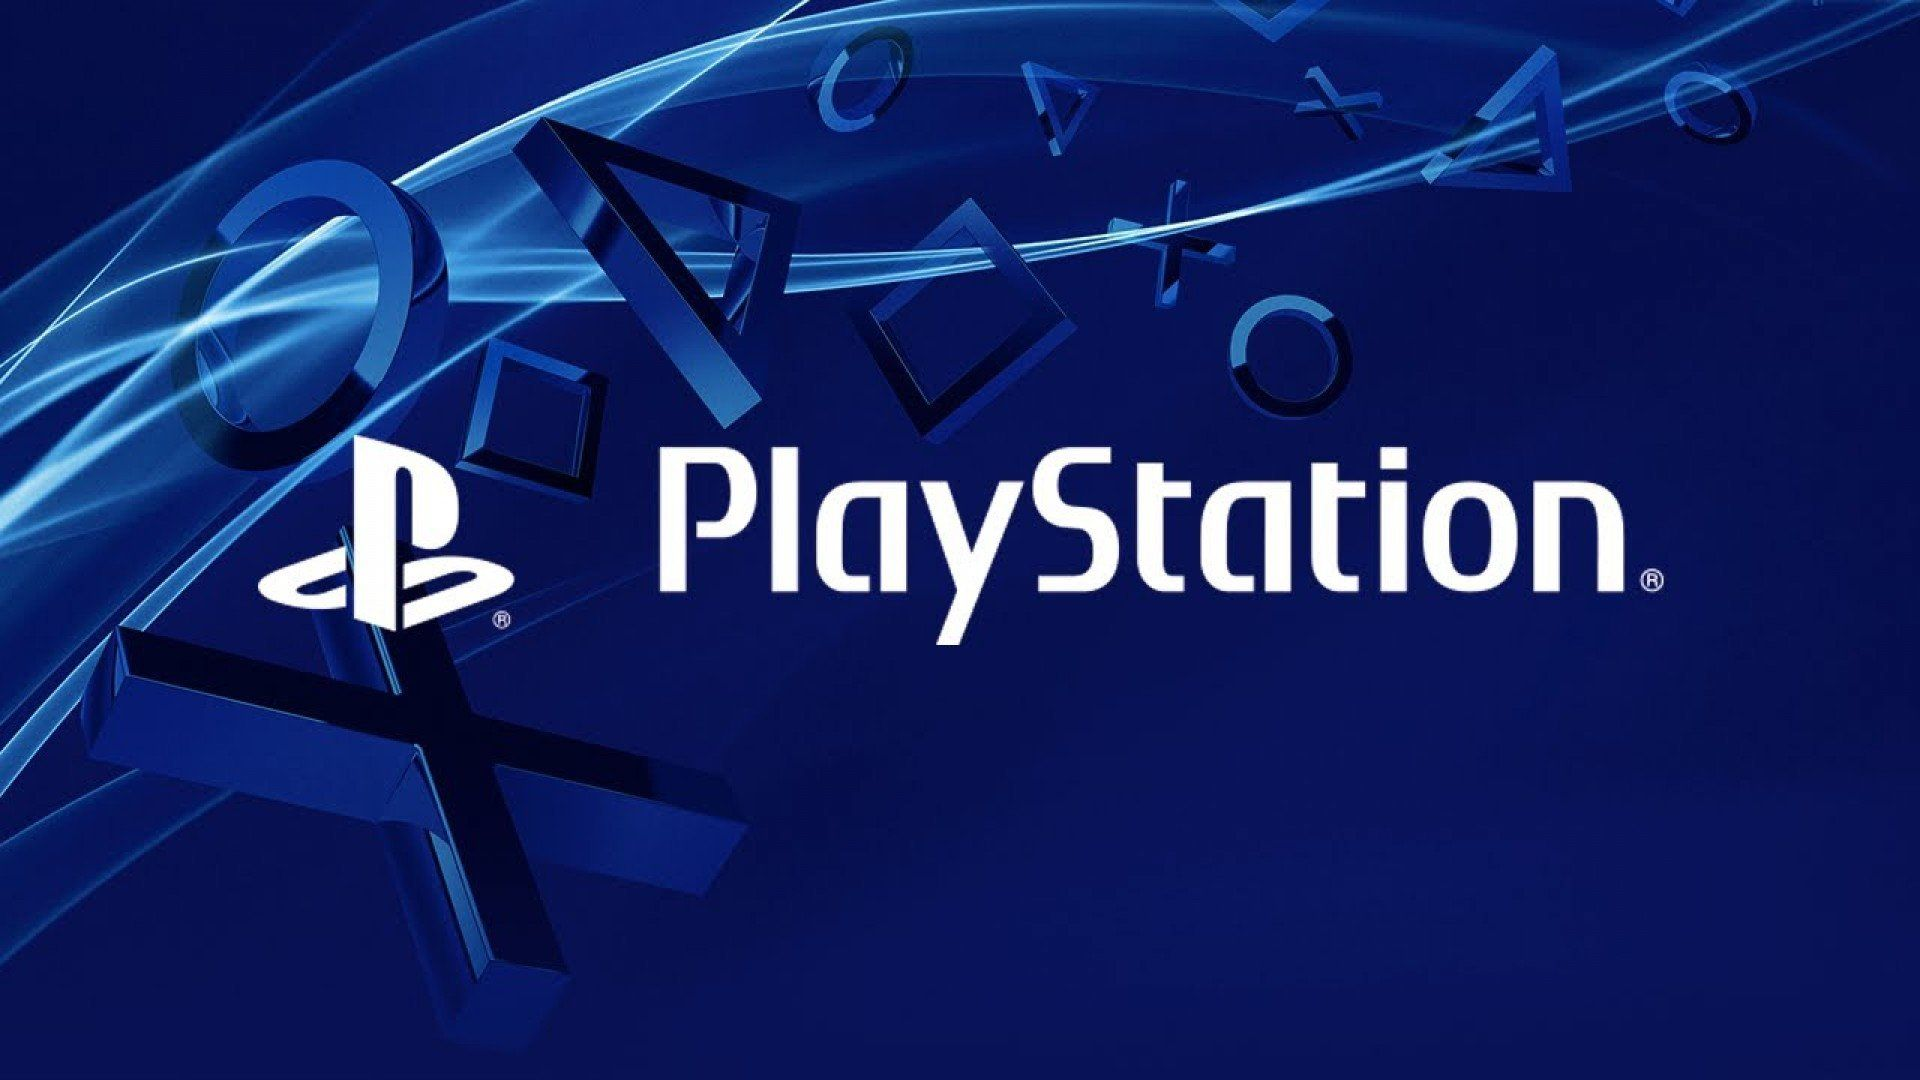 Playstation Wallpapers Top Free Playstation Backgrounds Wallpaperaccess